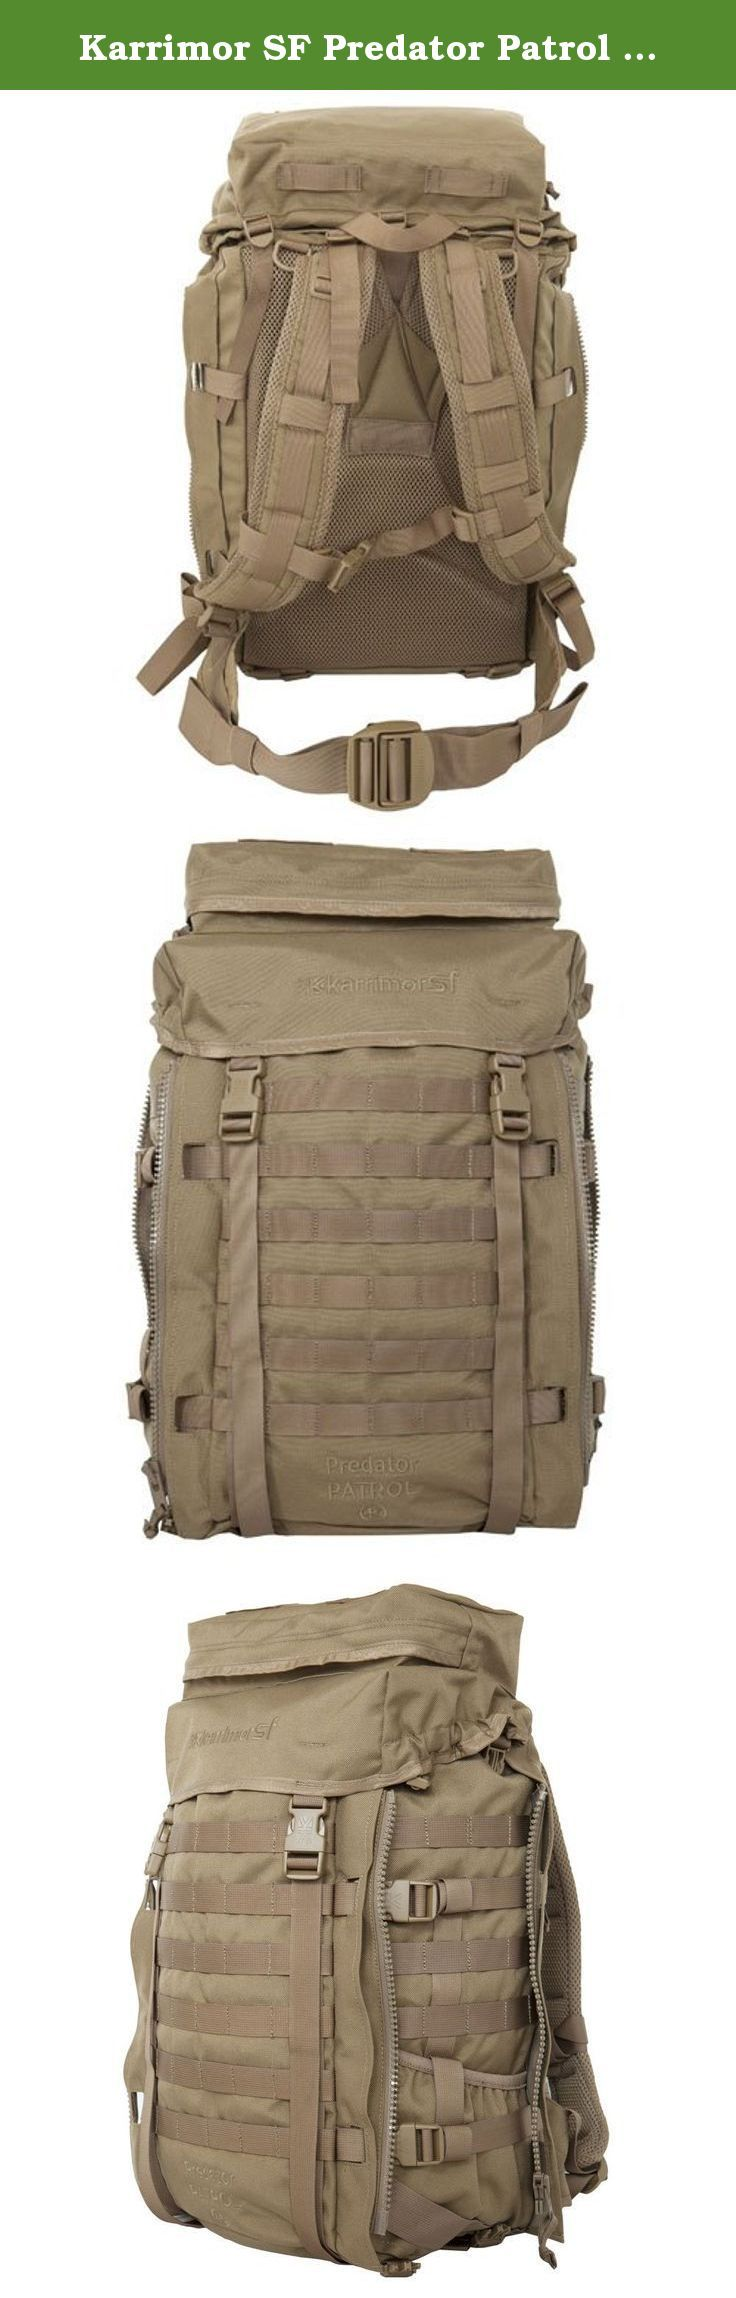 Karrimor SF Predator Patrol 45 PLCE Backpack One Size Coyote. Karrimor SF Predator Patrol 45 PLCE Rucksack - Designed to offer a versatile platform for field operations in the 21st Century the Predator Patrol 45 is based on extensive battlefield testing and includes many refinements and evolutionary improvements from previous generations. Manufactured using the highest quality materials and components the Predator Patrol 45 is designed to operate in extreme conditions and facilitate…